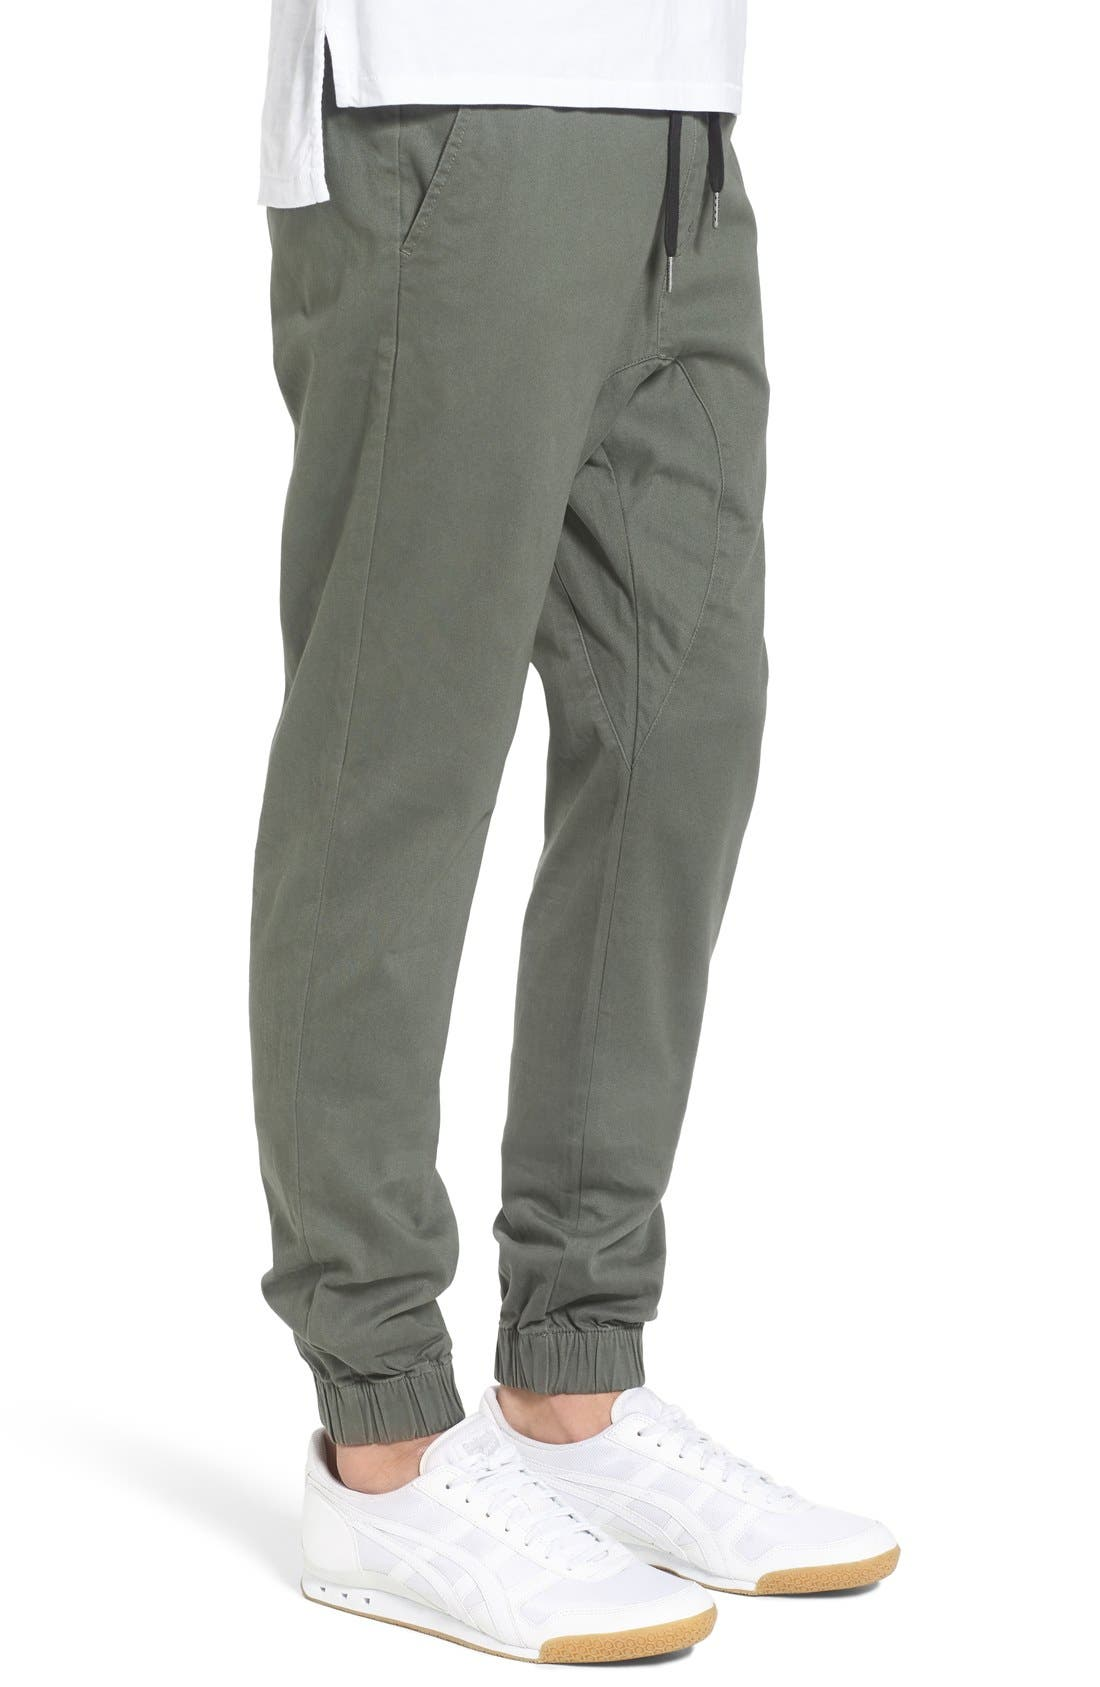 Sureshot Jogger Pants,                             Alternate thumbnail 8, color,